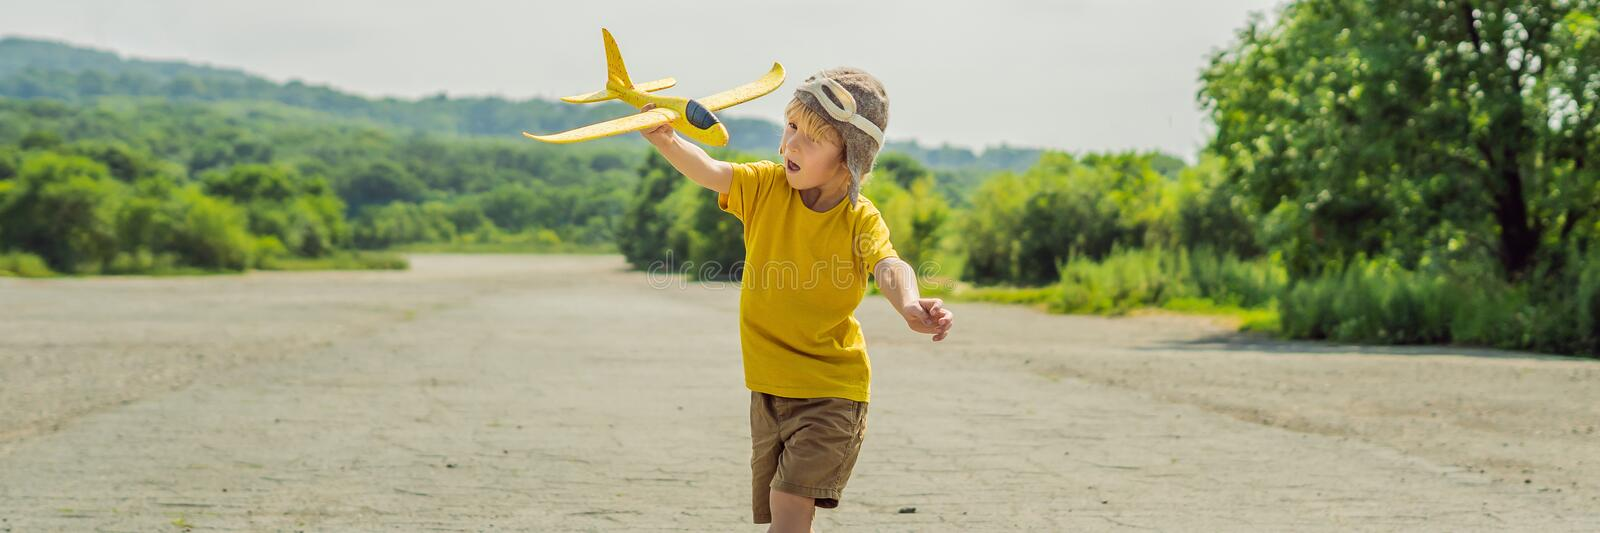 Happy kid playing with toy airplane against old runway background. Traveling with kids concept BANNER, LONG FORMAT. Happy kid playing with toy airplane against stock image